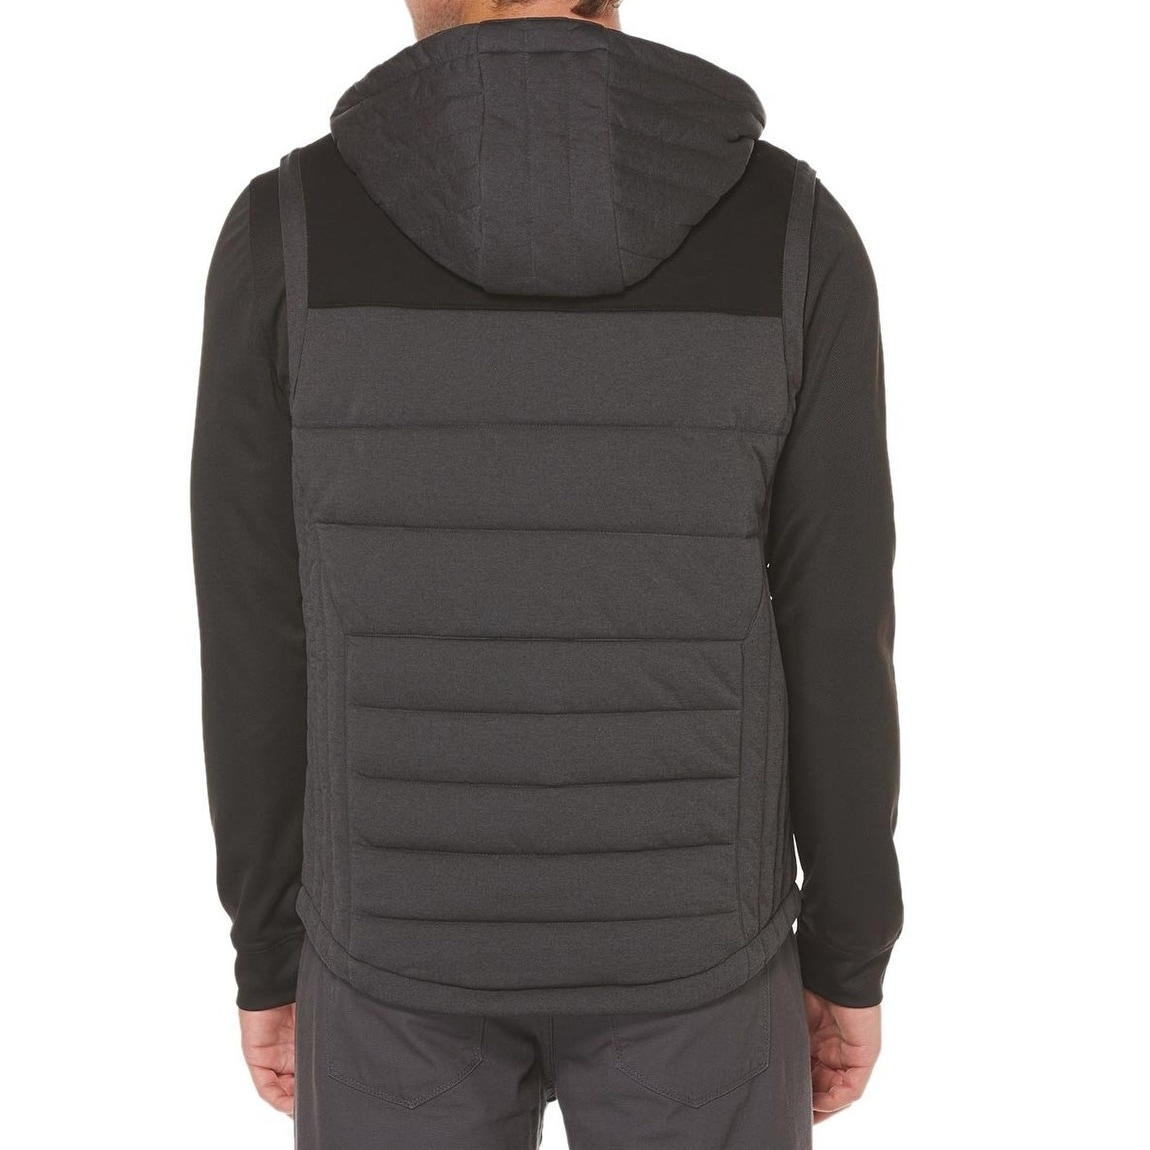 67abb9dcc4 Shop Perry Ellis NEW Black Heather Men Size 2XL Quilted Puffer Full ...